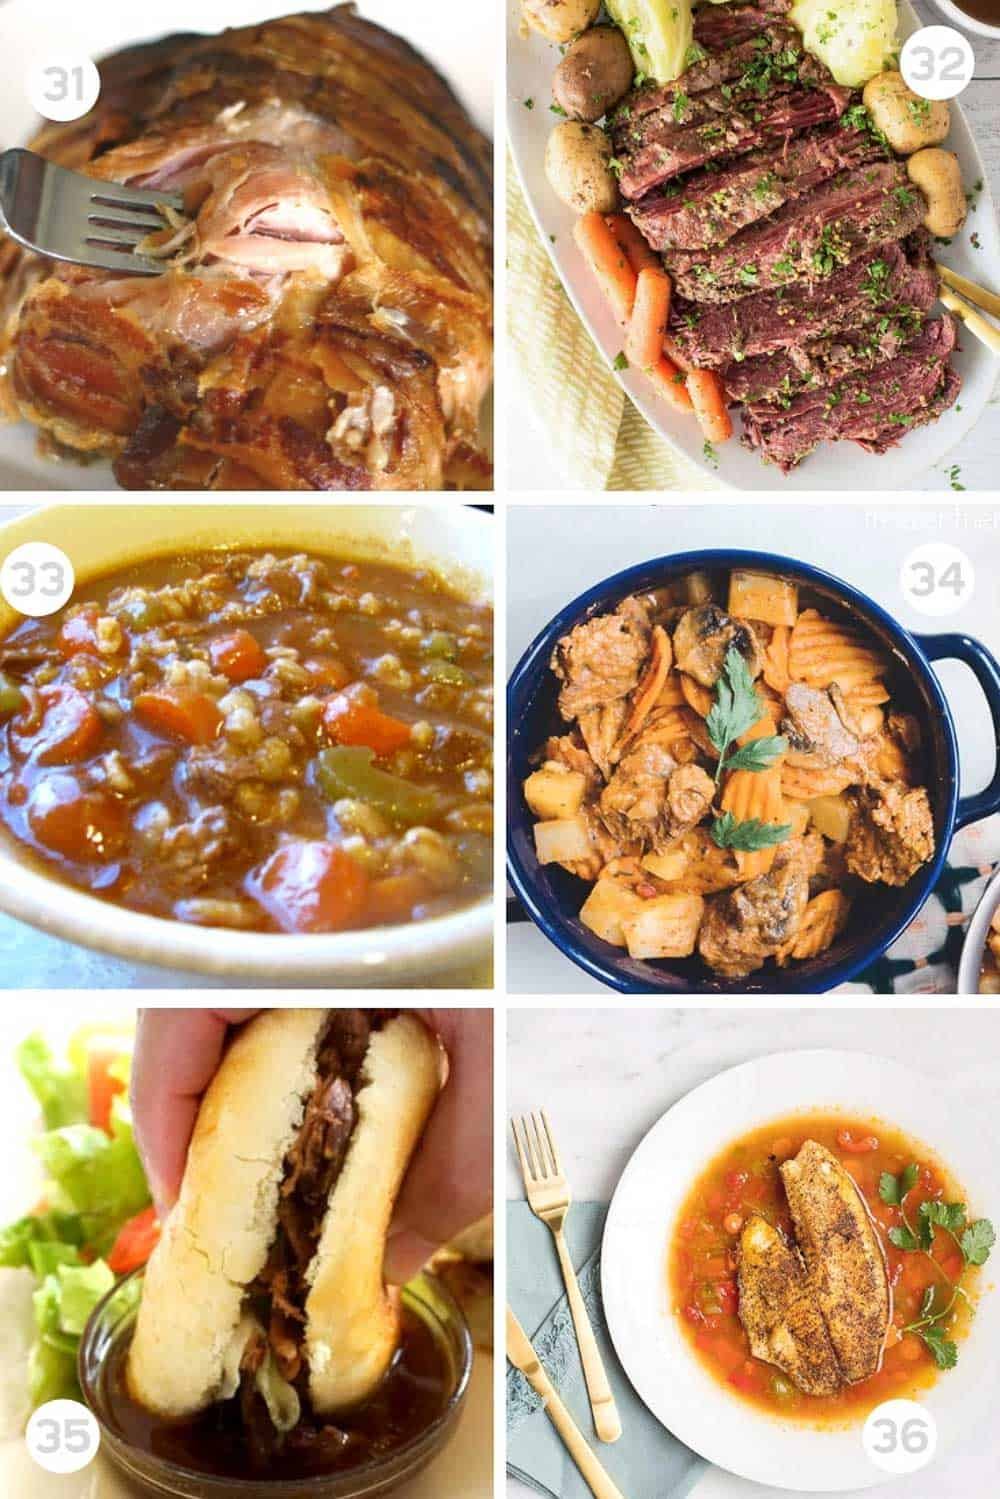 6 Different Healthy freezer slow cooker meals numbered 31-36